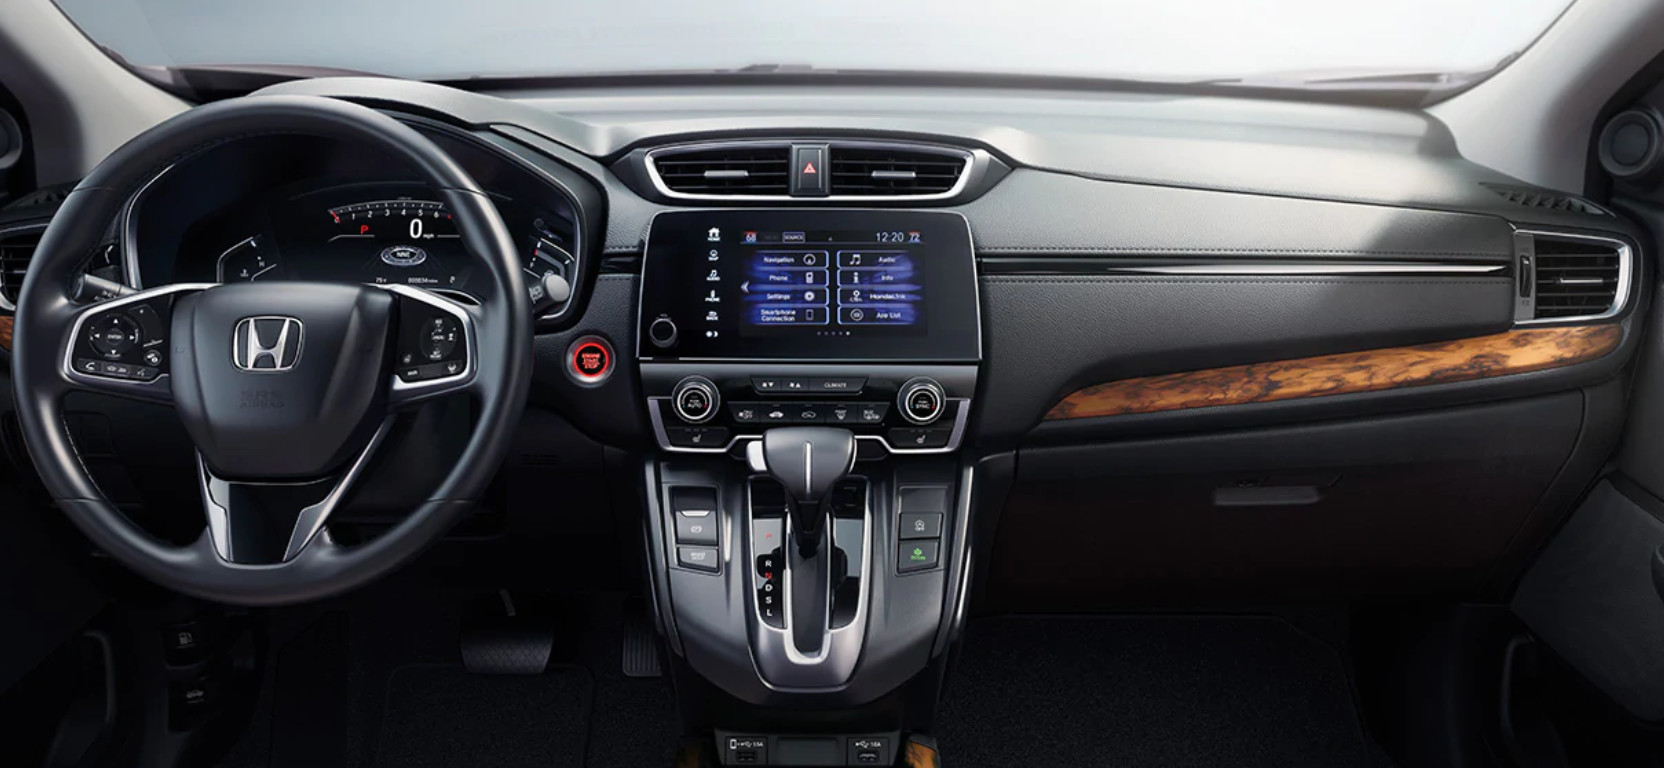 2020 Honda CR-V Available Dual-Zone Automatic Climate Control System